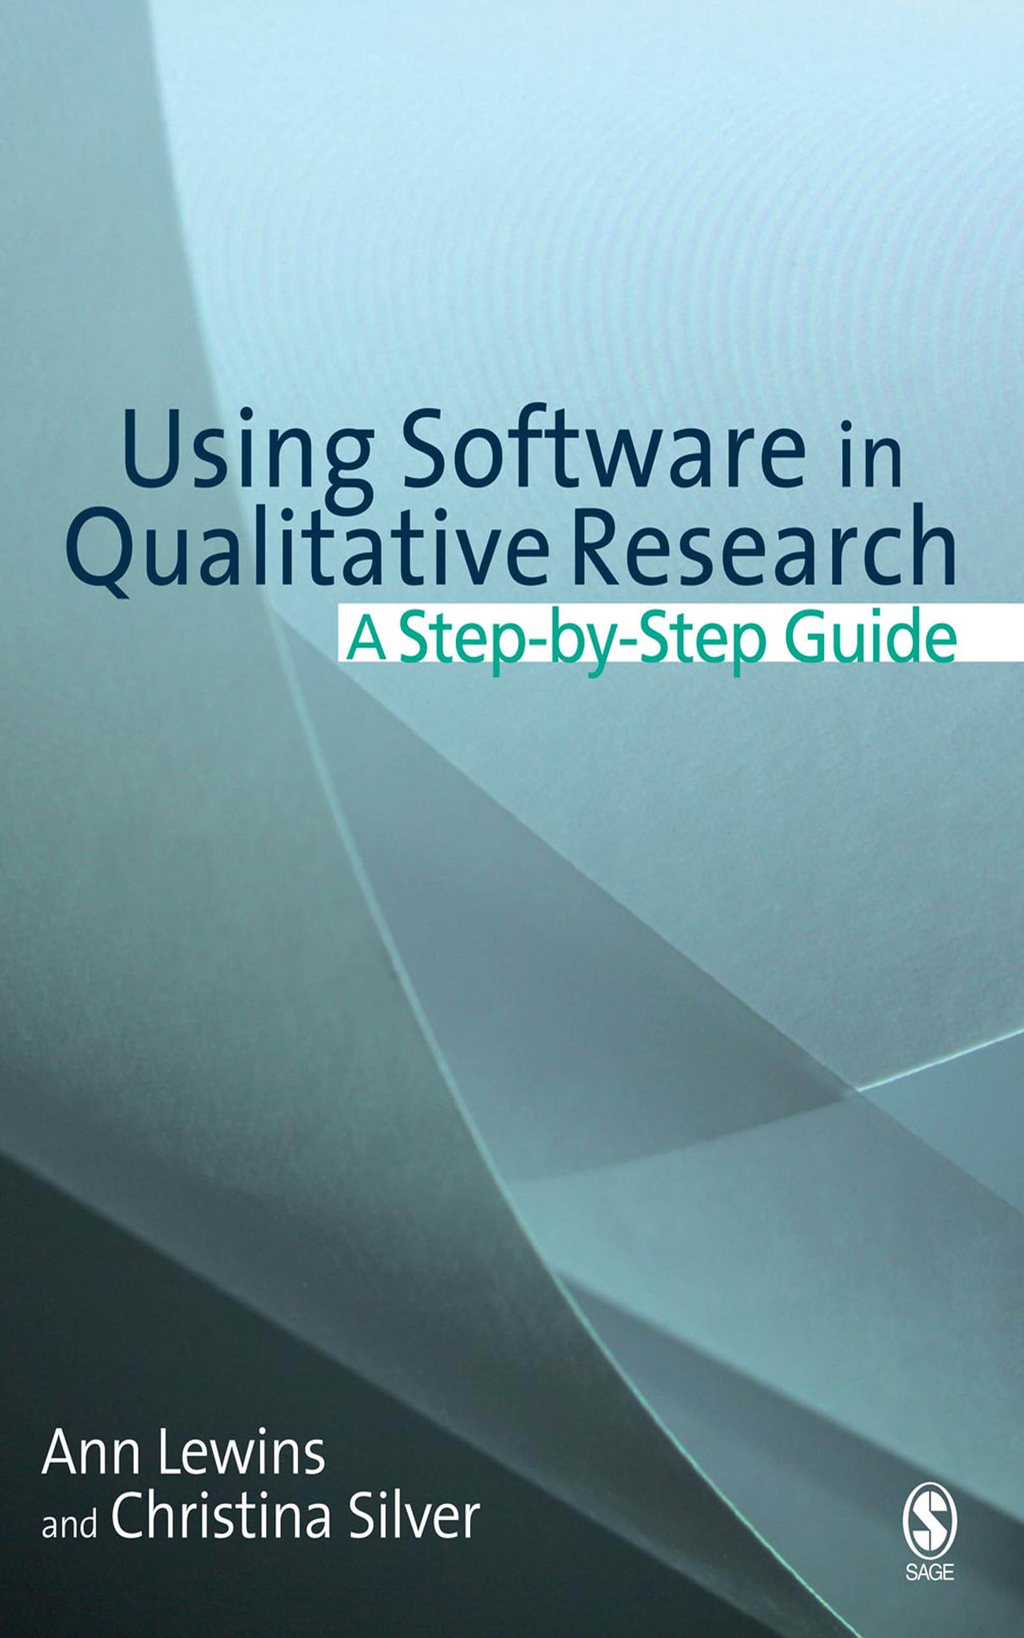 Using Software in Qualitative Research A Step-by-Step Guide